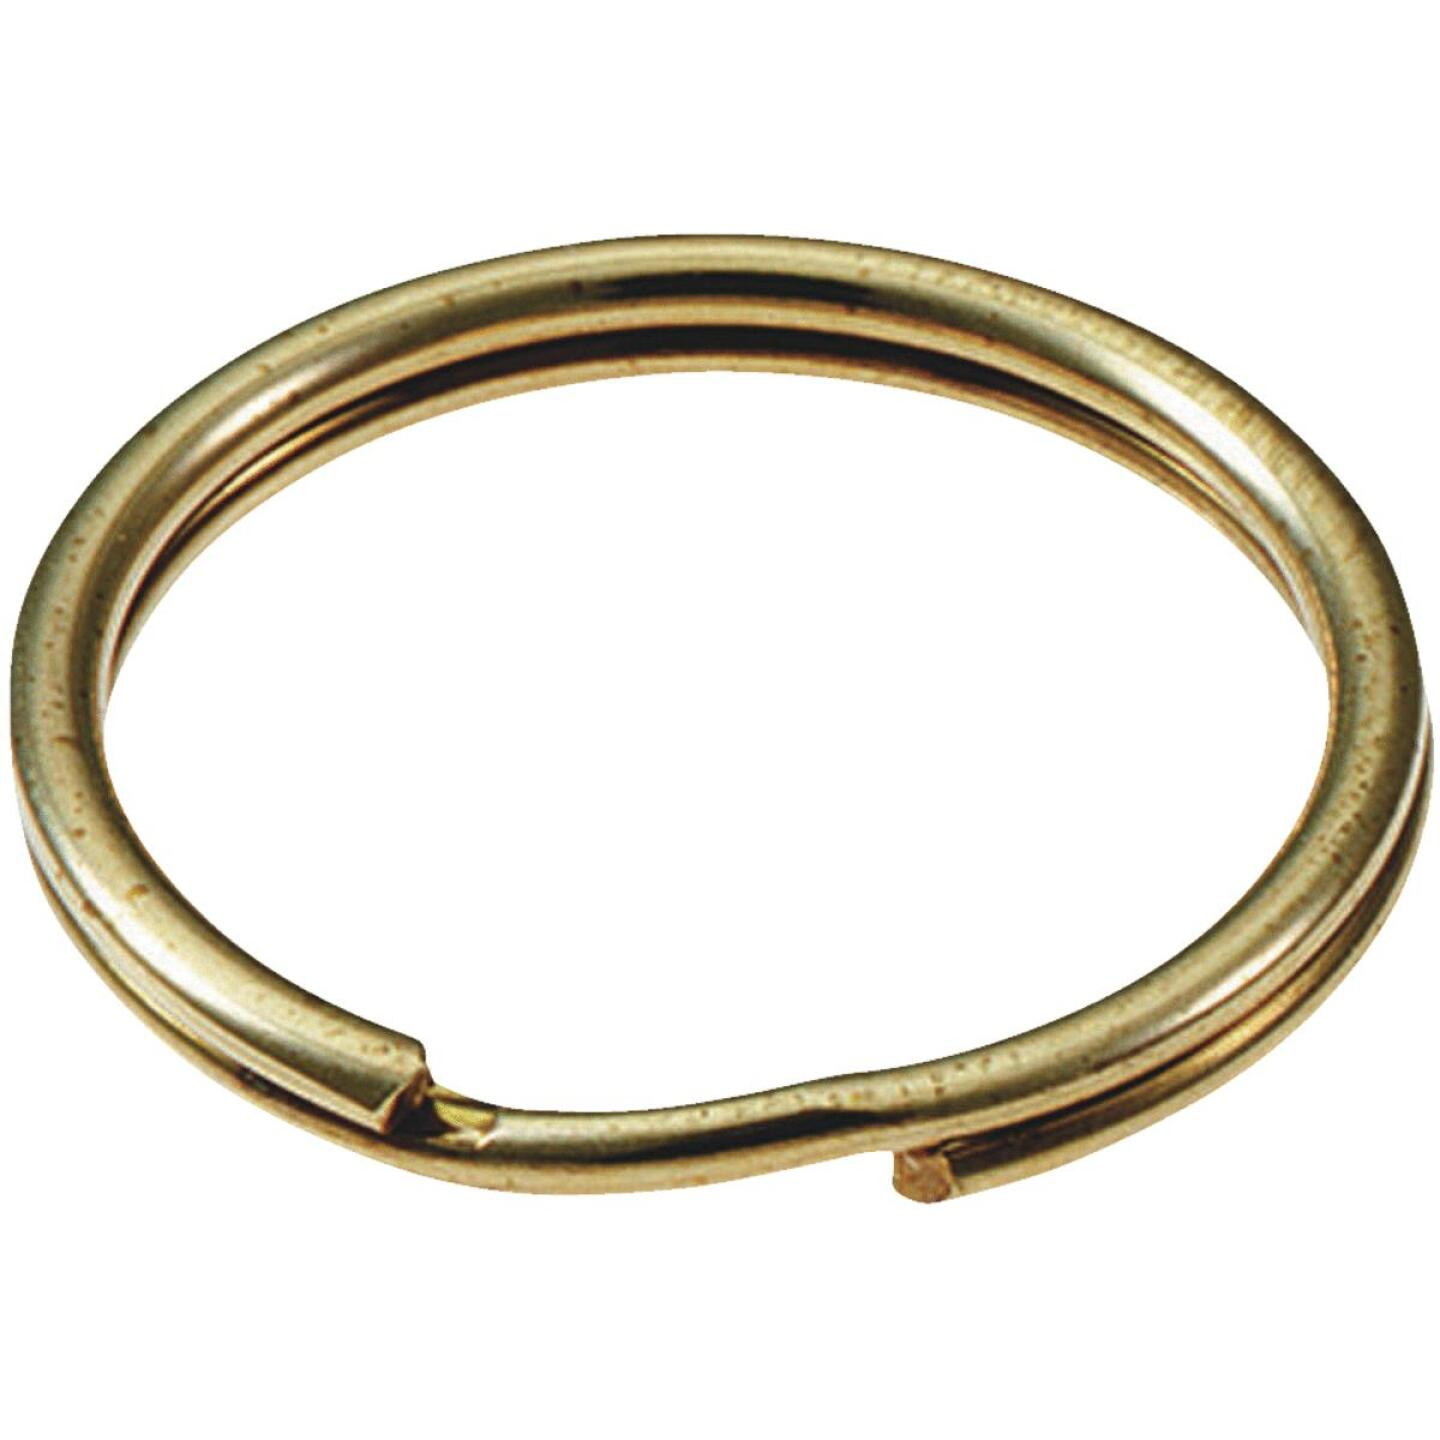 Lucky Line Tempered Steel Nickel-Plated 3 In. Key Ring Image 1